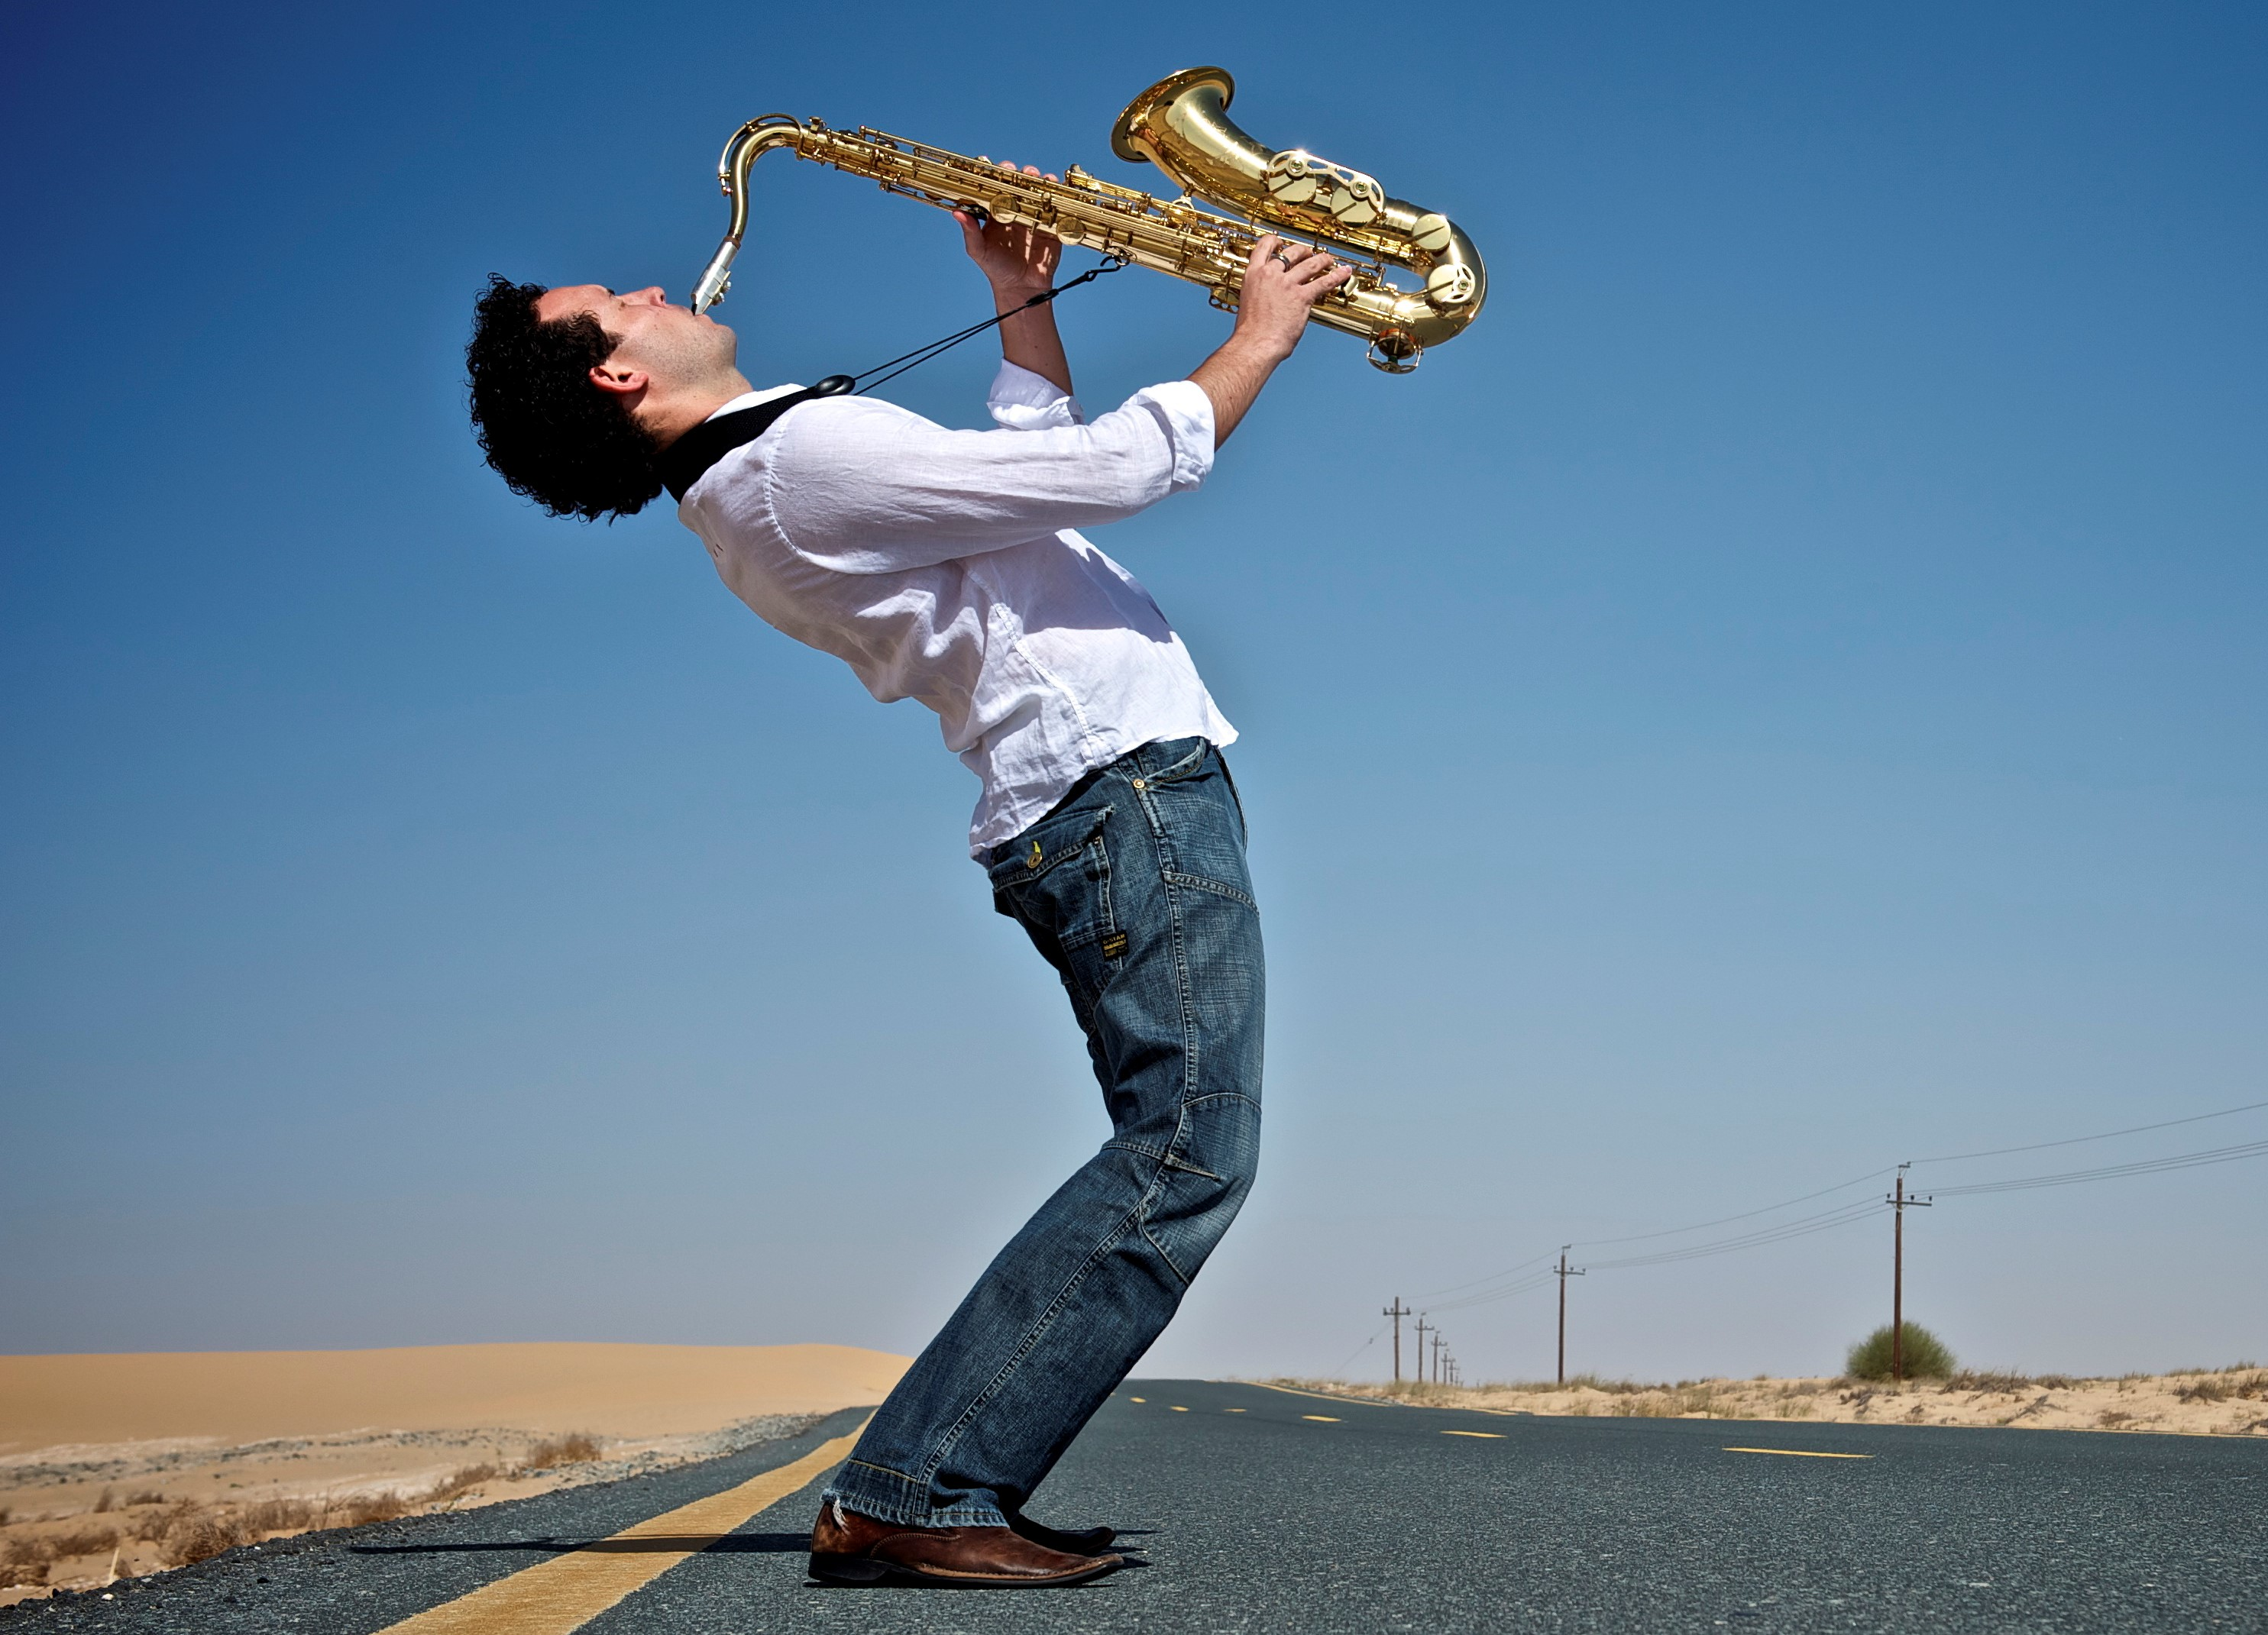 adam long saxophonist dubai sole agency 1 - Music & Entertainment